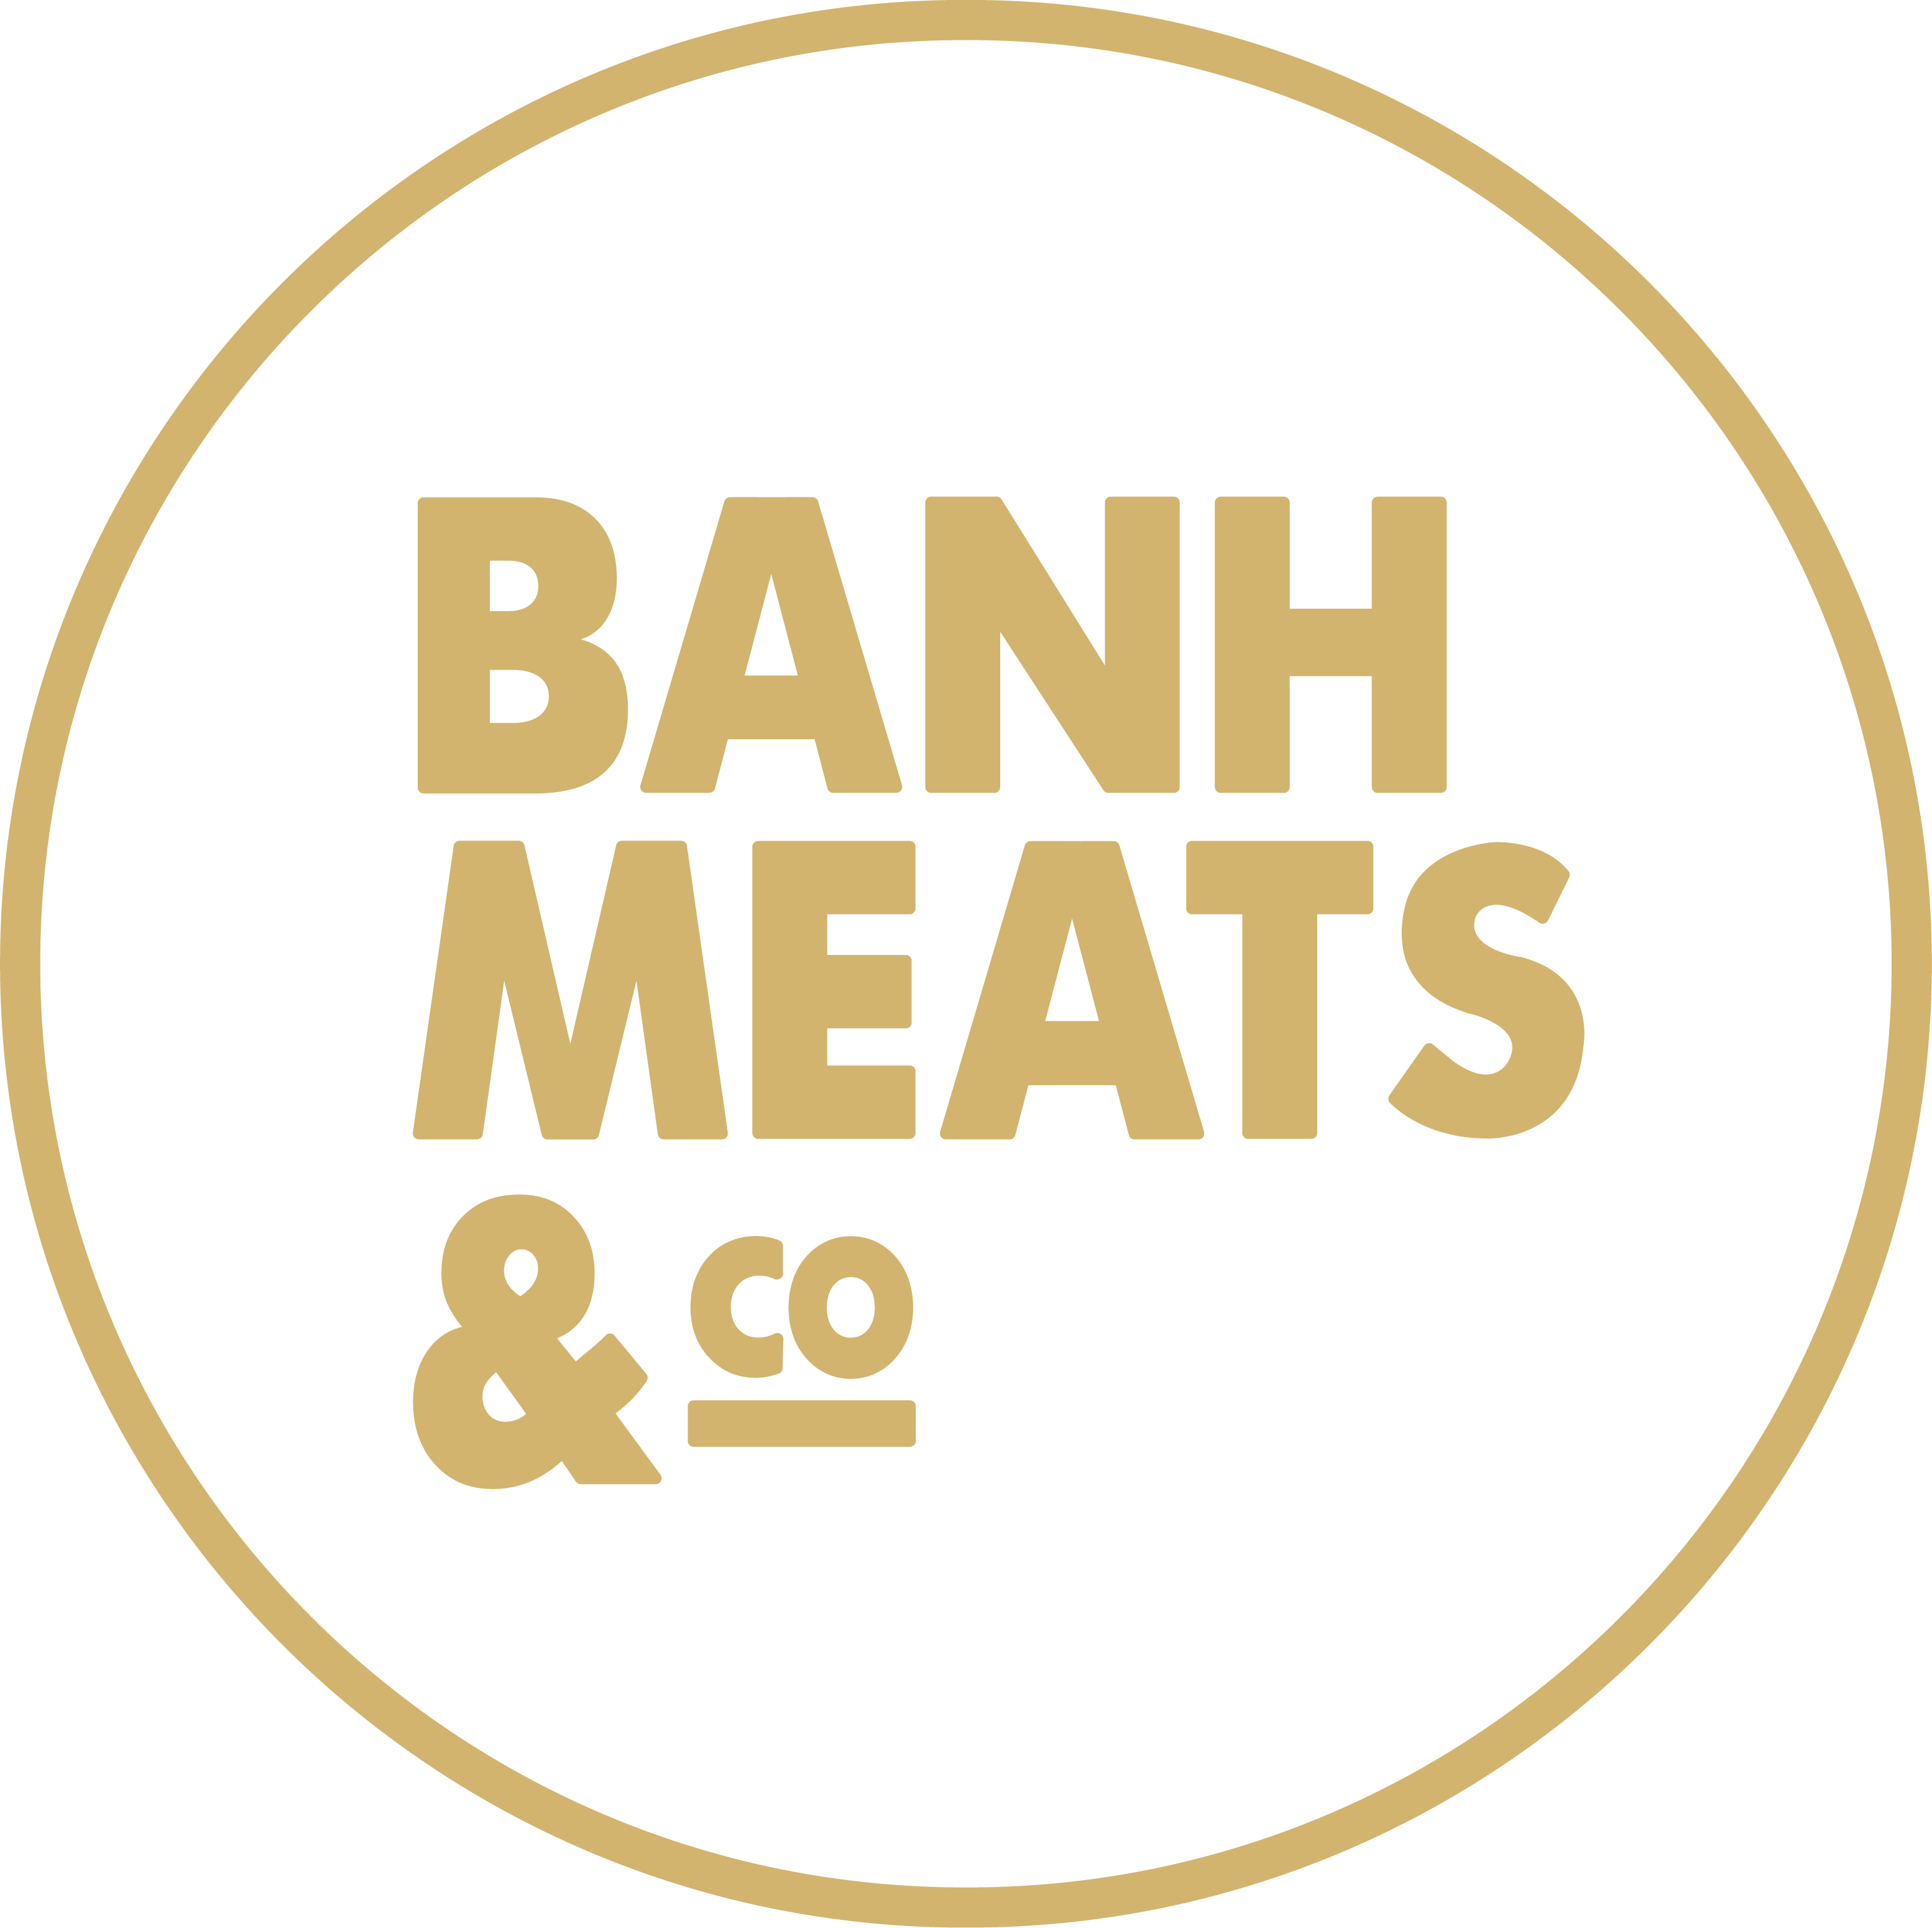 Banh Meats and Co